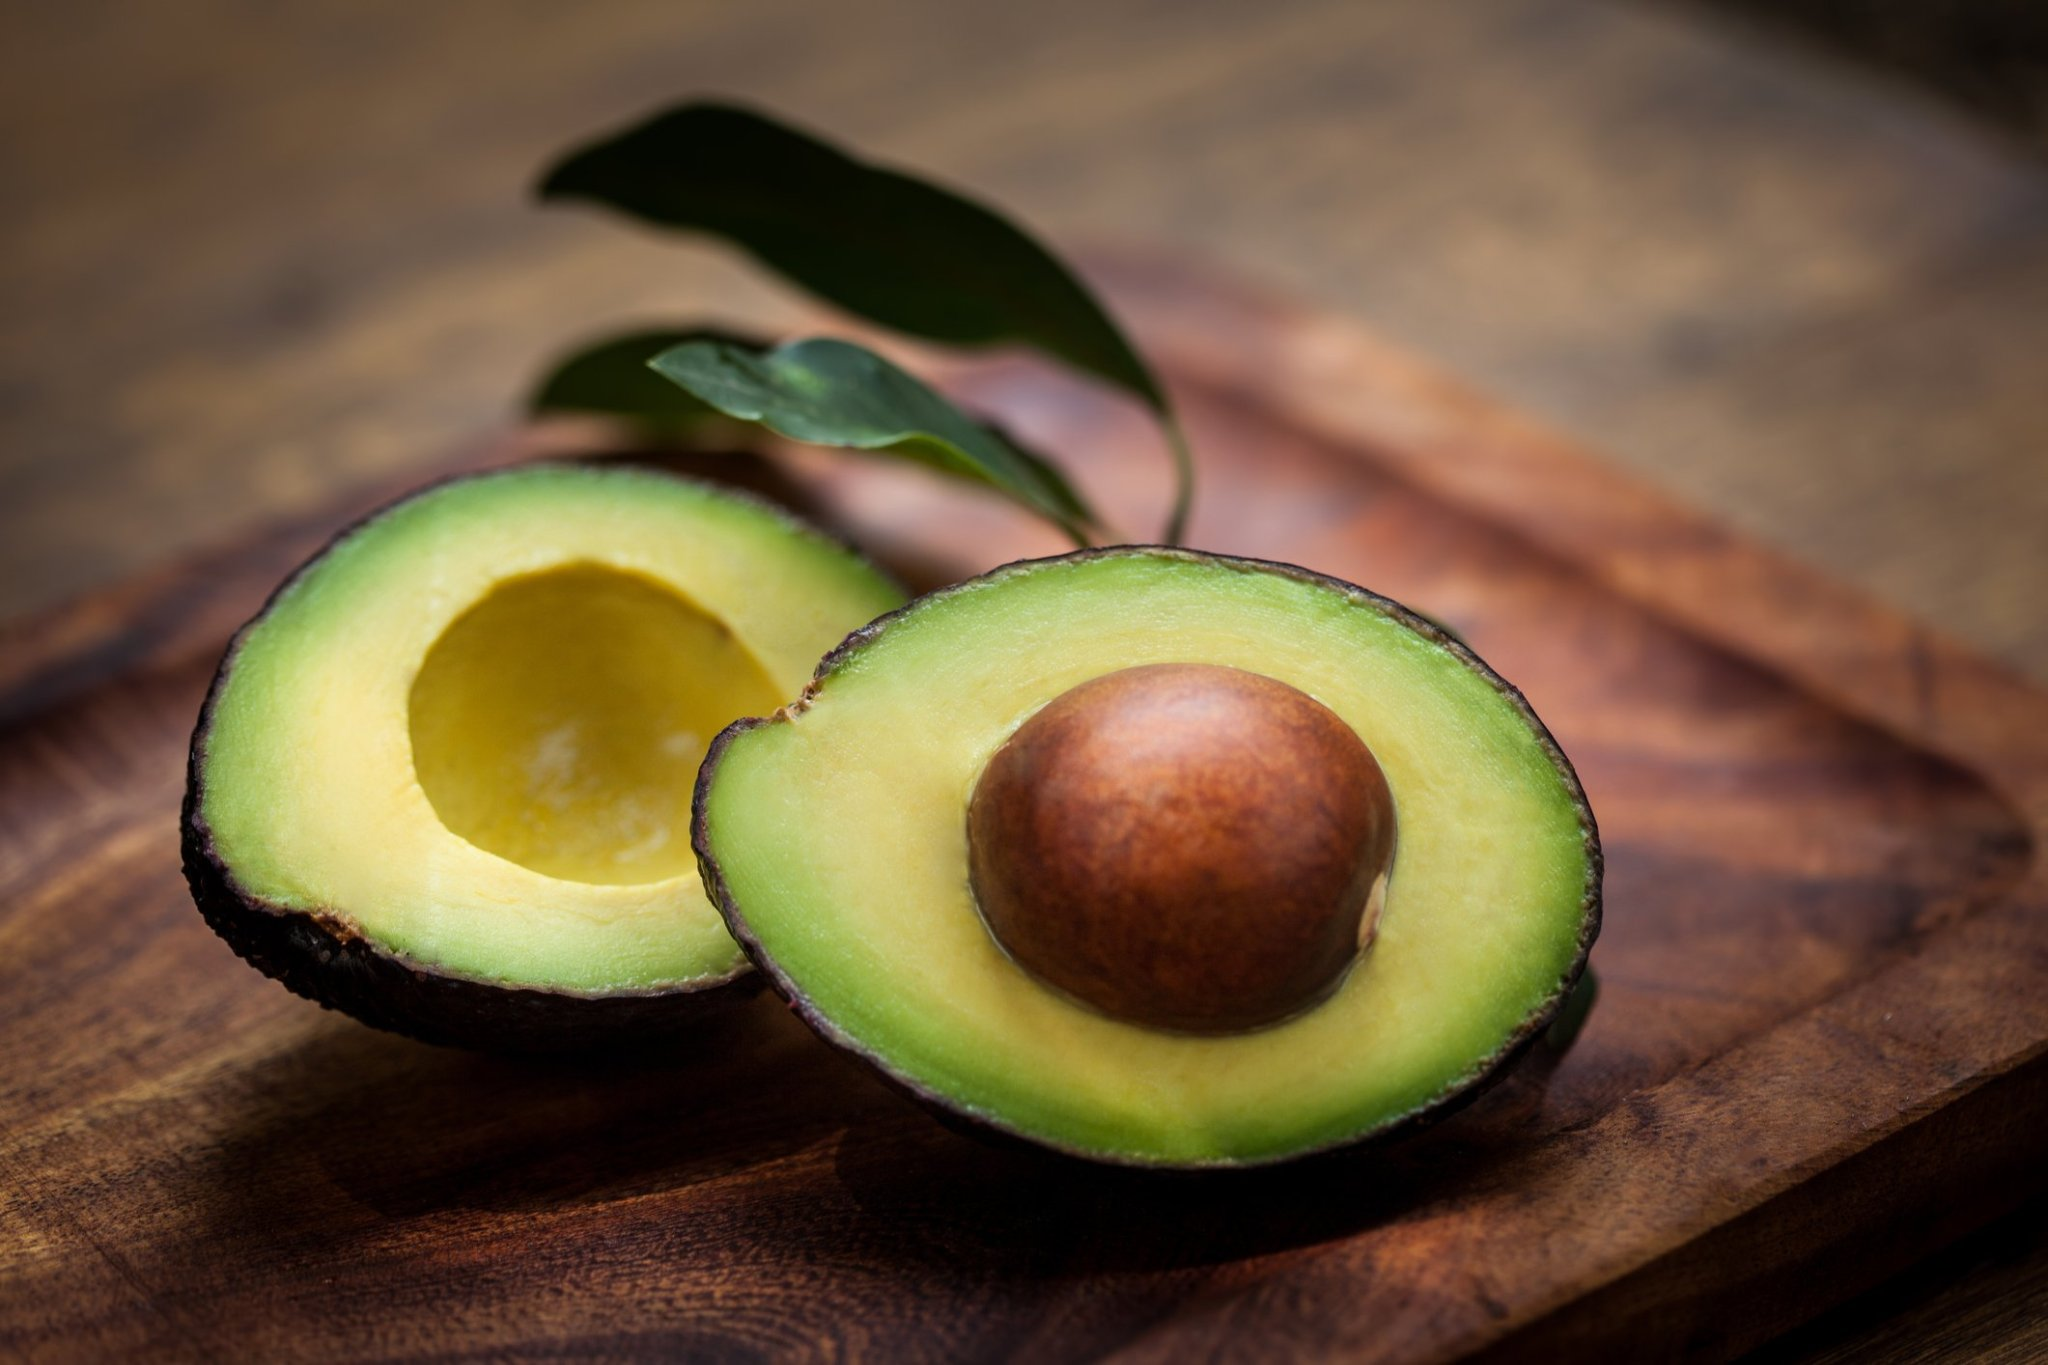 How to Ripen an Avocado in 2 Minutes